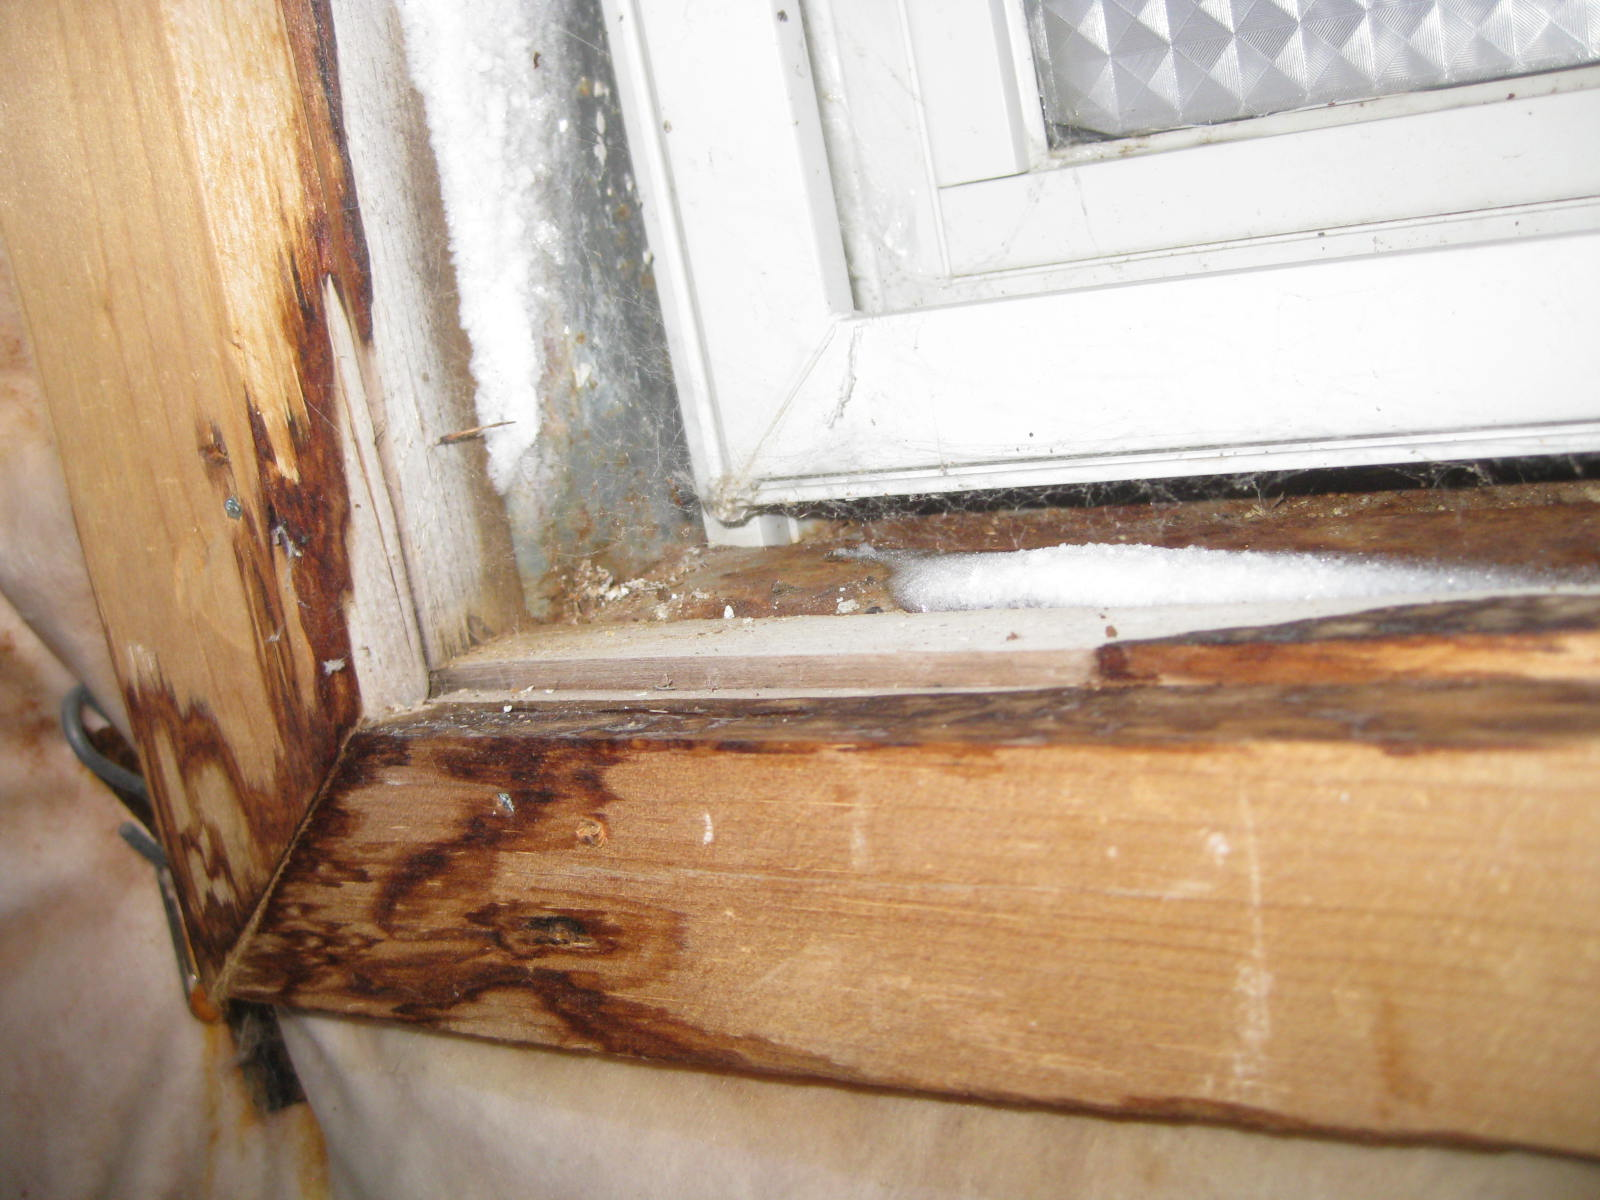 Water Damaged Wood Floor Repairs And The Open Window